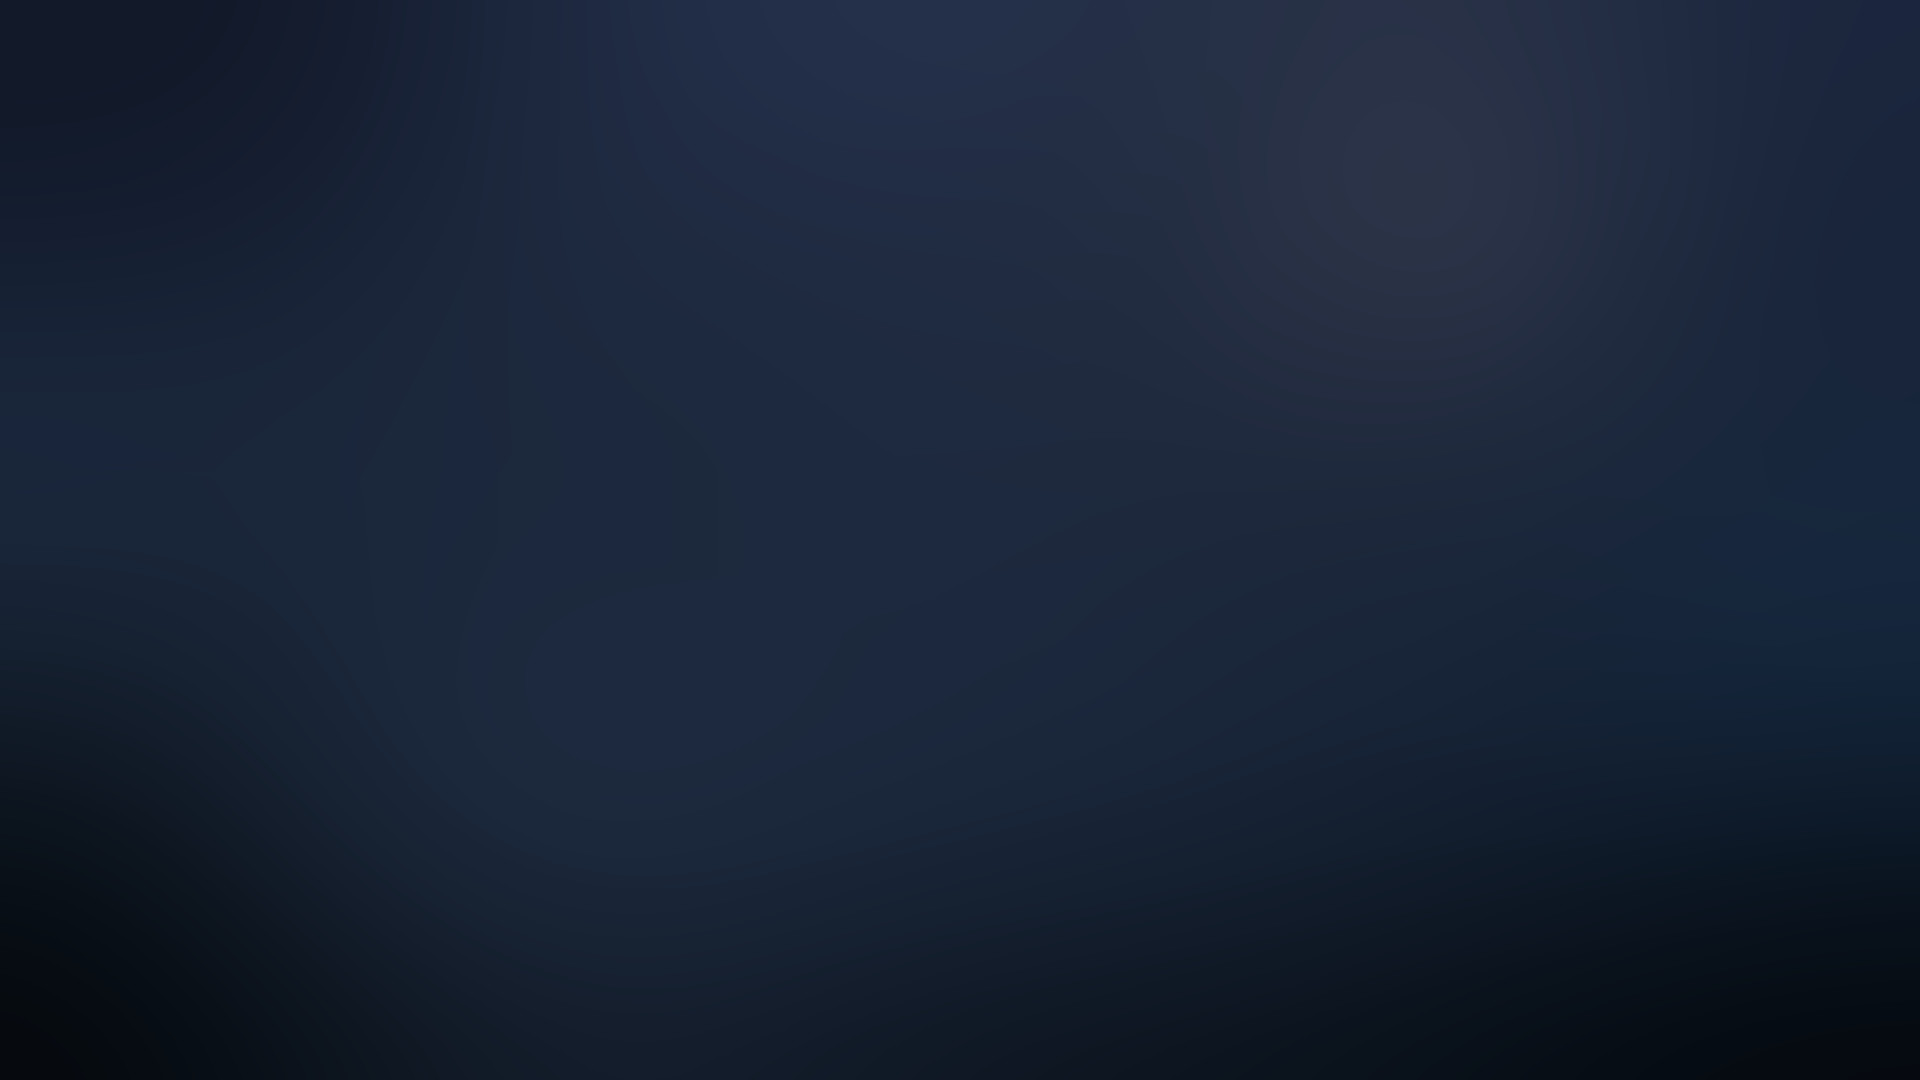 1920x1080 Blue Gradient Wallpaper  Blue, Gradient #6541